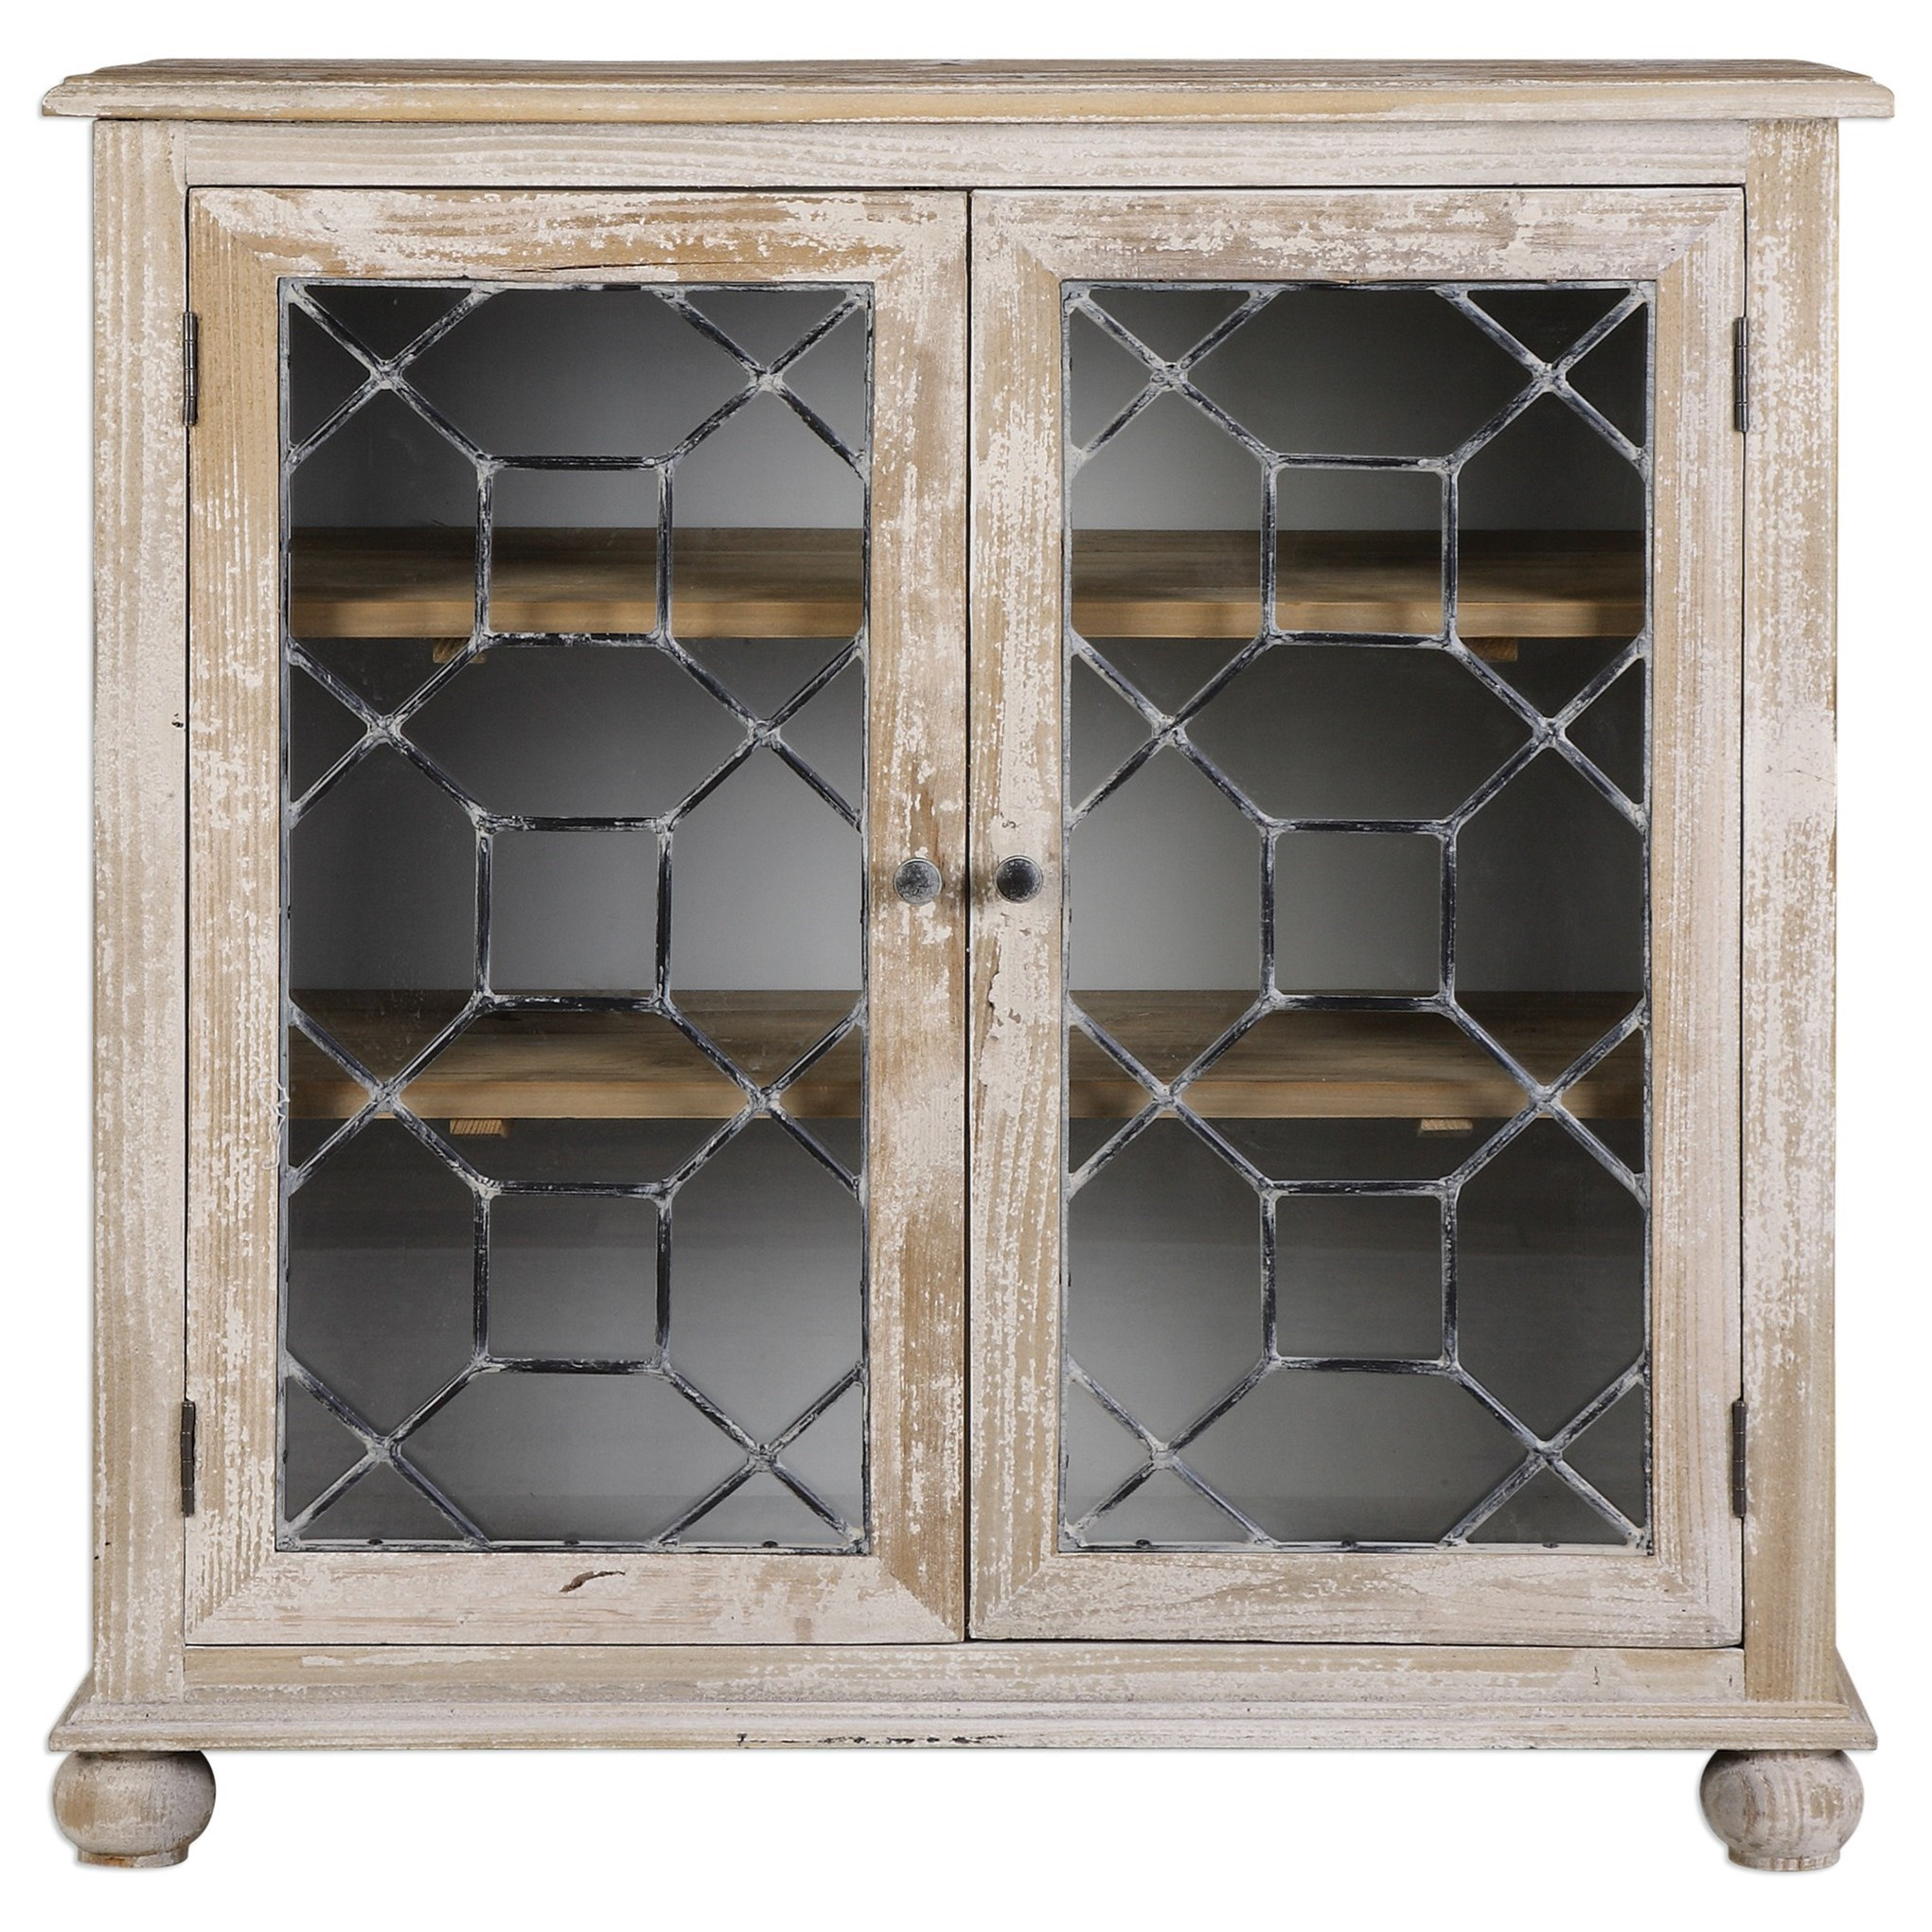 Uttermost Accent Furniture Earline Accent Cabinet - Item Number: 24680